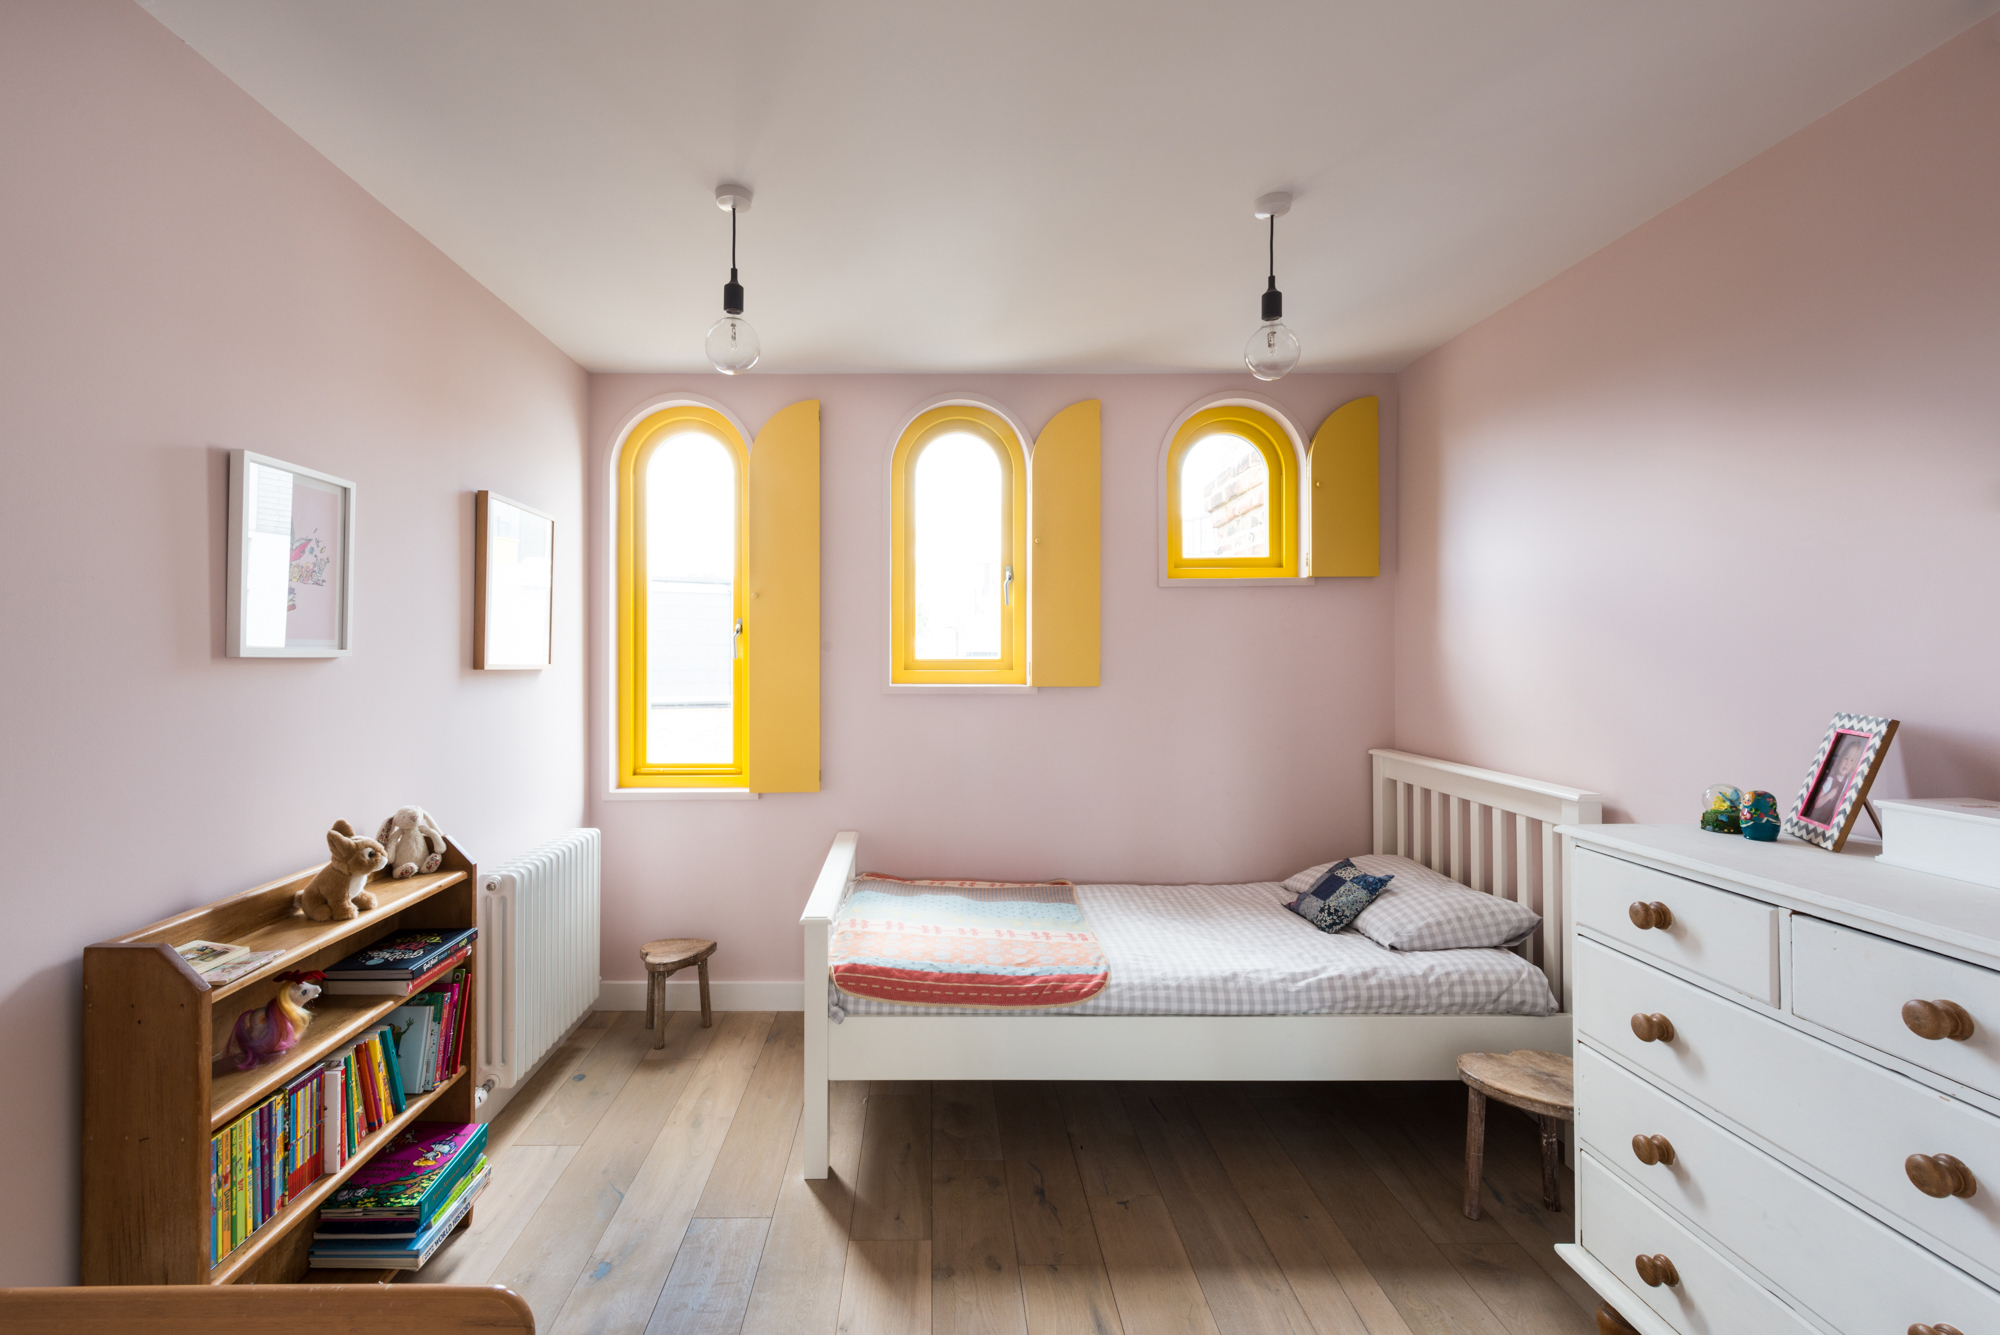 wohnen-mit-farbe-valetta-house-london-andm-french-and-tie-decohome.de4_